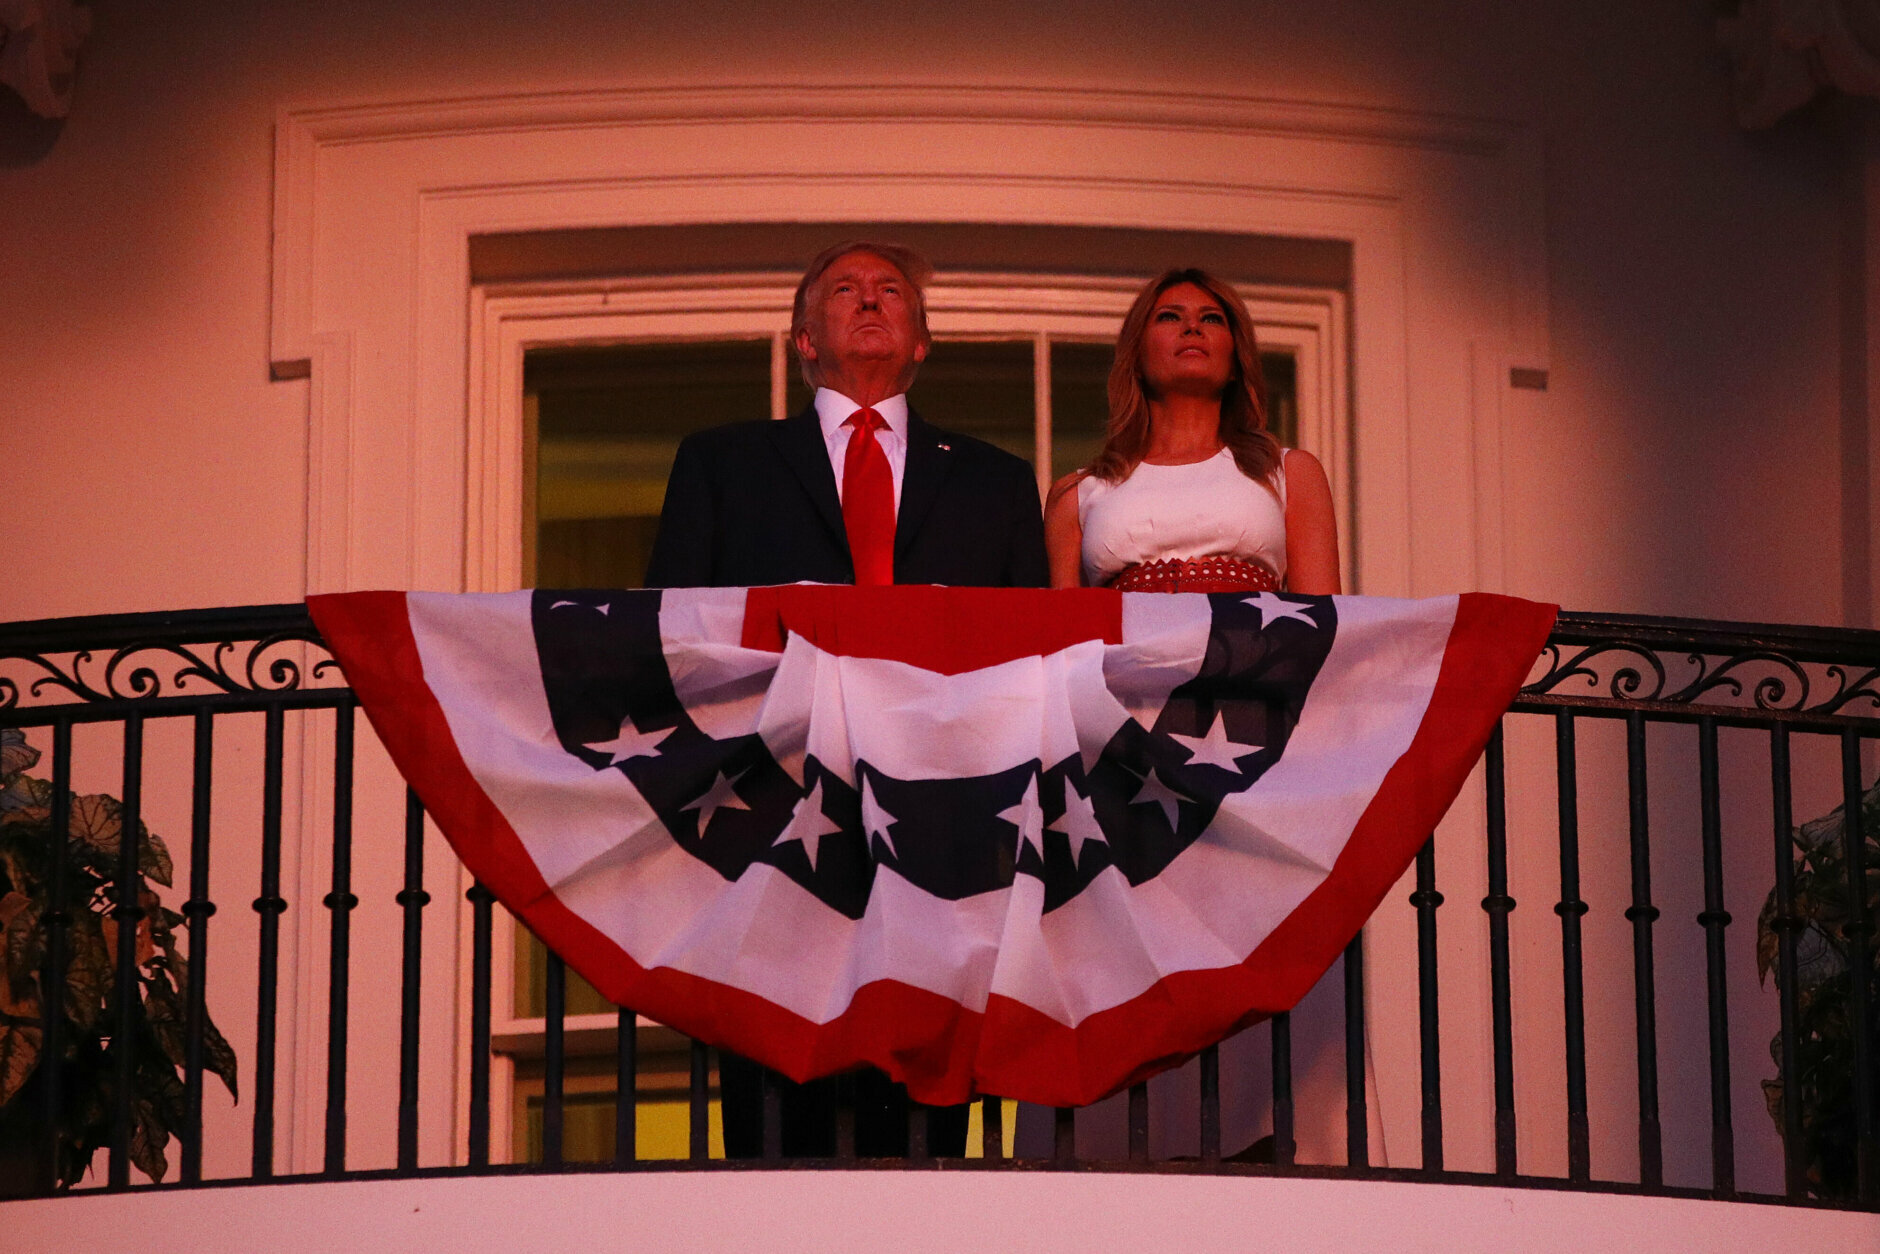 """President Donald Trump and first lady Melania Trump stand on the Truman Balcony of the White House as they watch a fireworks display during a """"Salute to America"""" event, Saturday, July 4, 2020, in Washington. (AP Photo/Patrick Semansky)"""